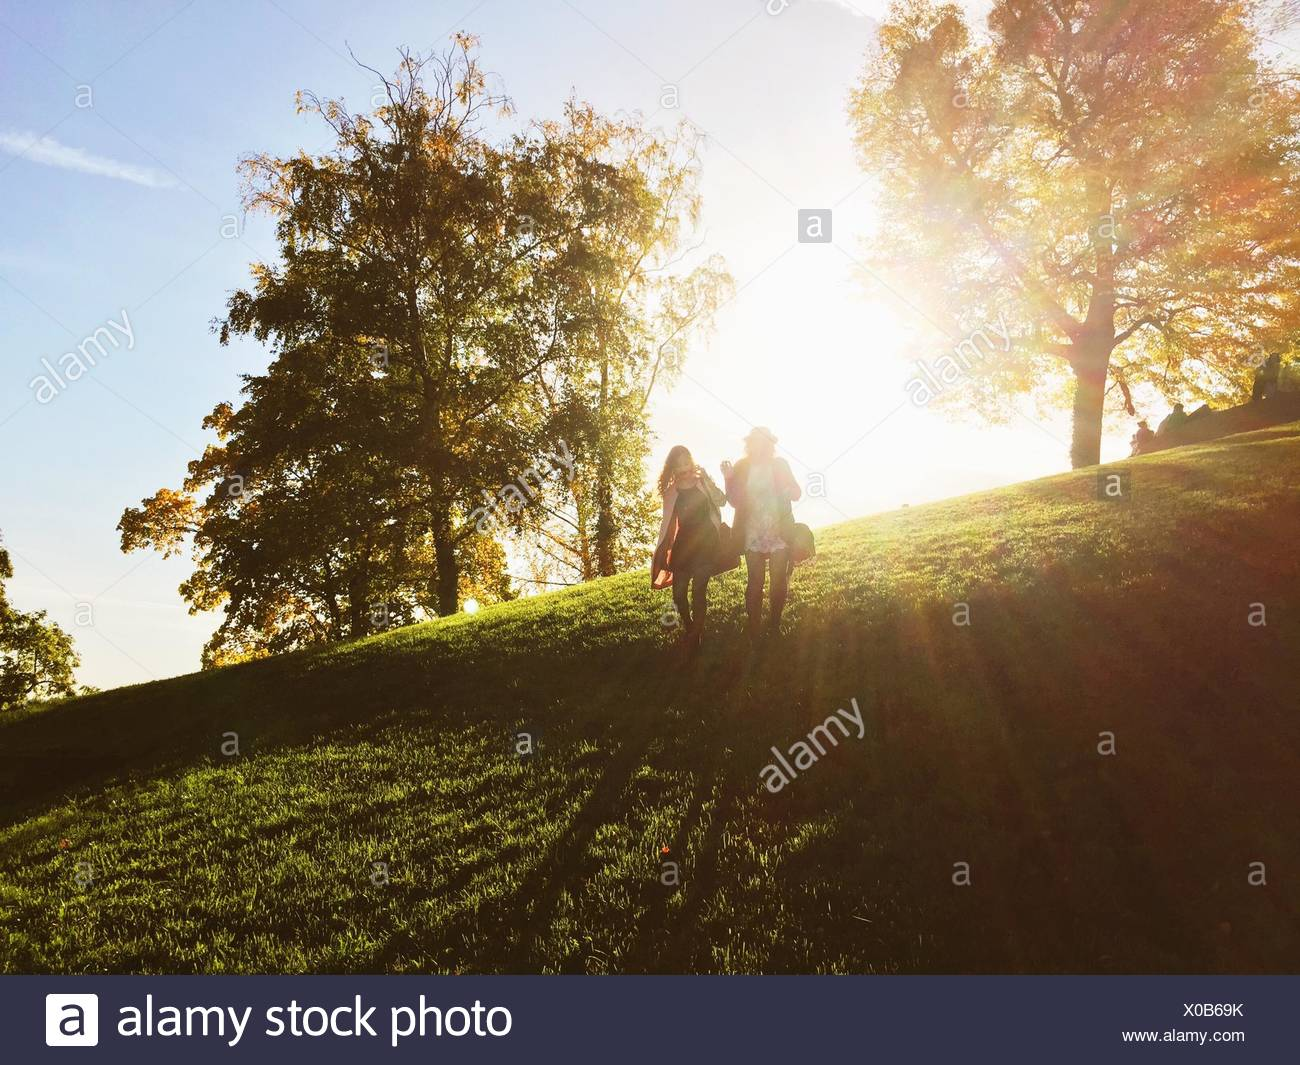 Front View Of Women Walking Down Grassy Field Against Sky - Stock Image